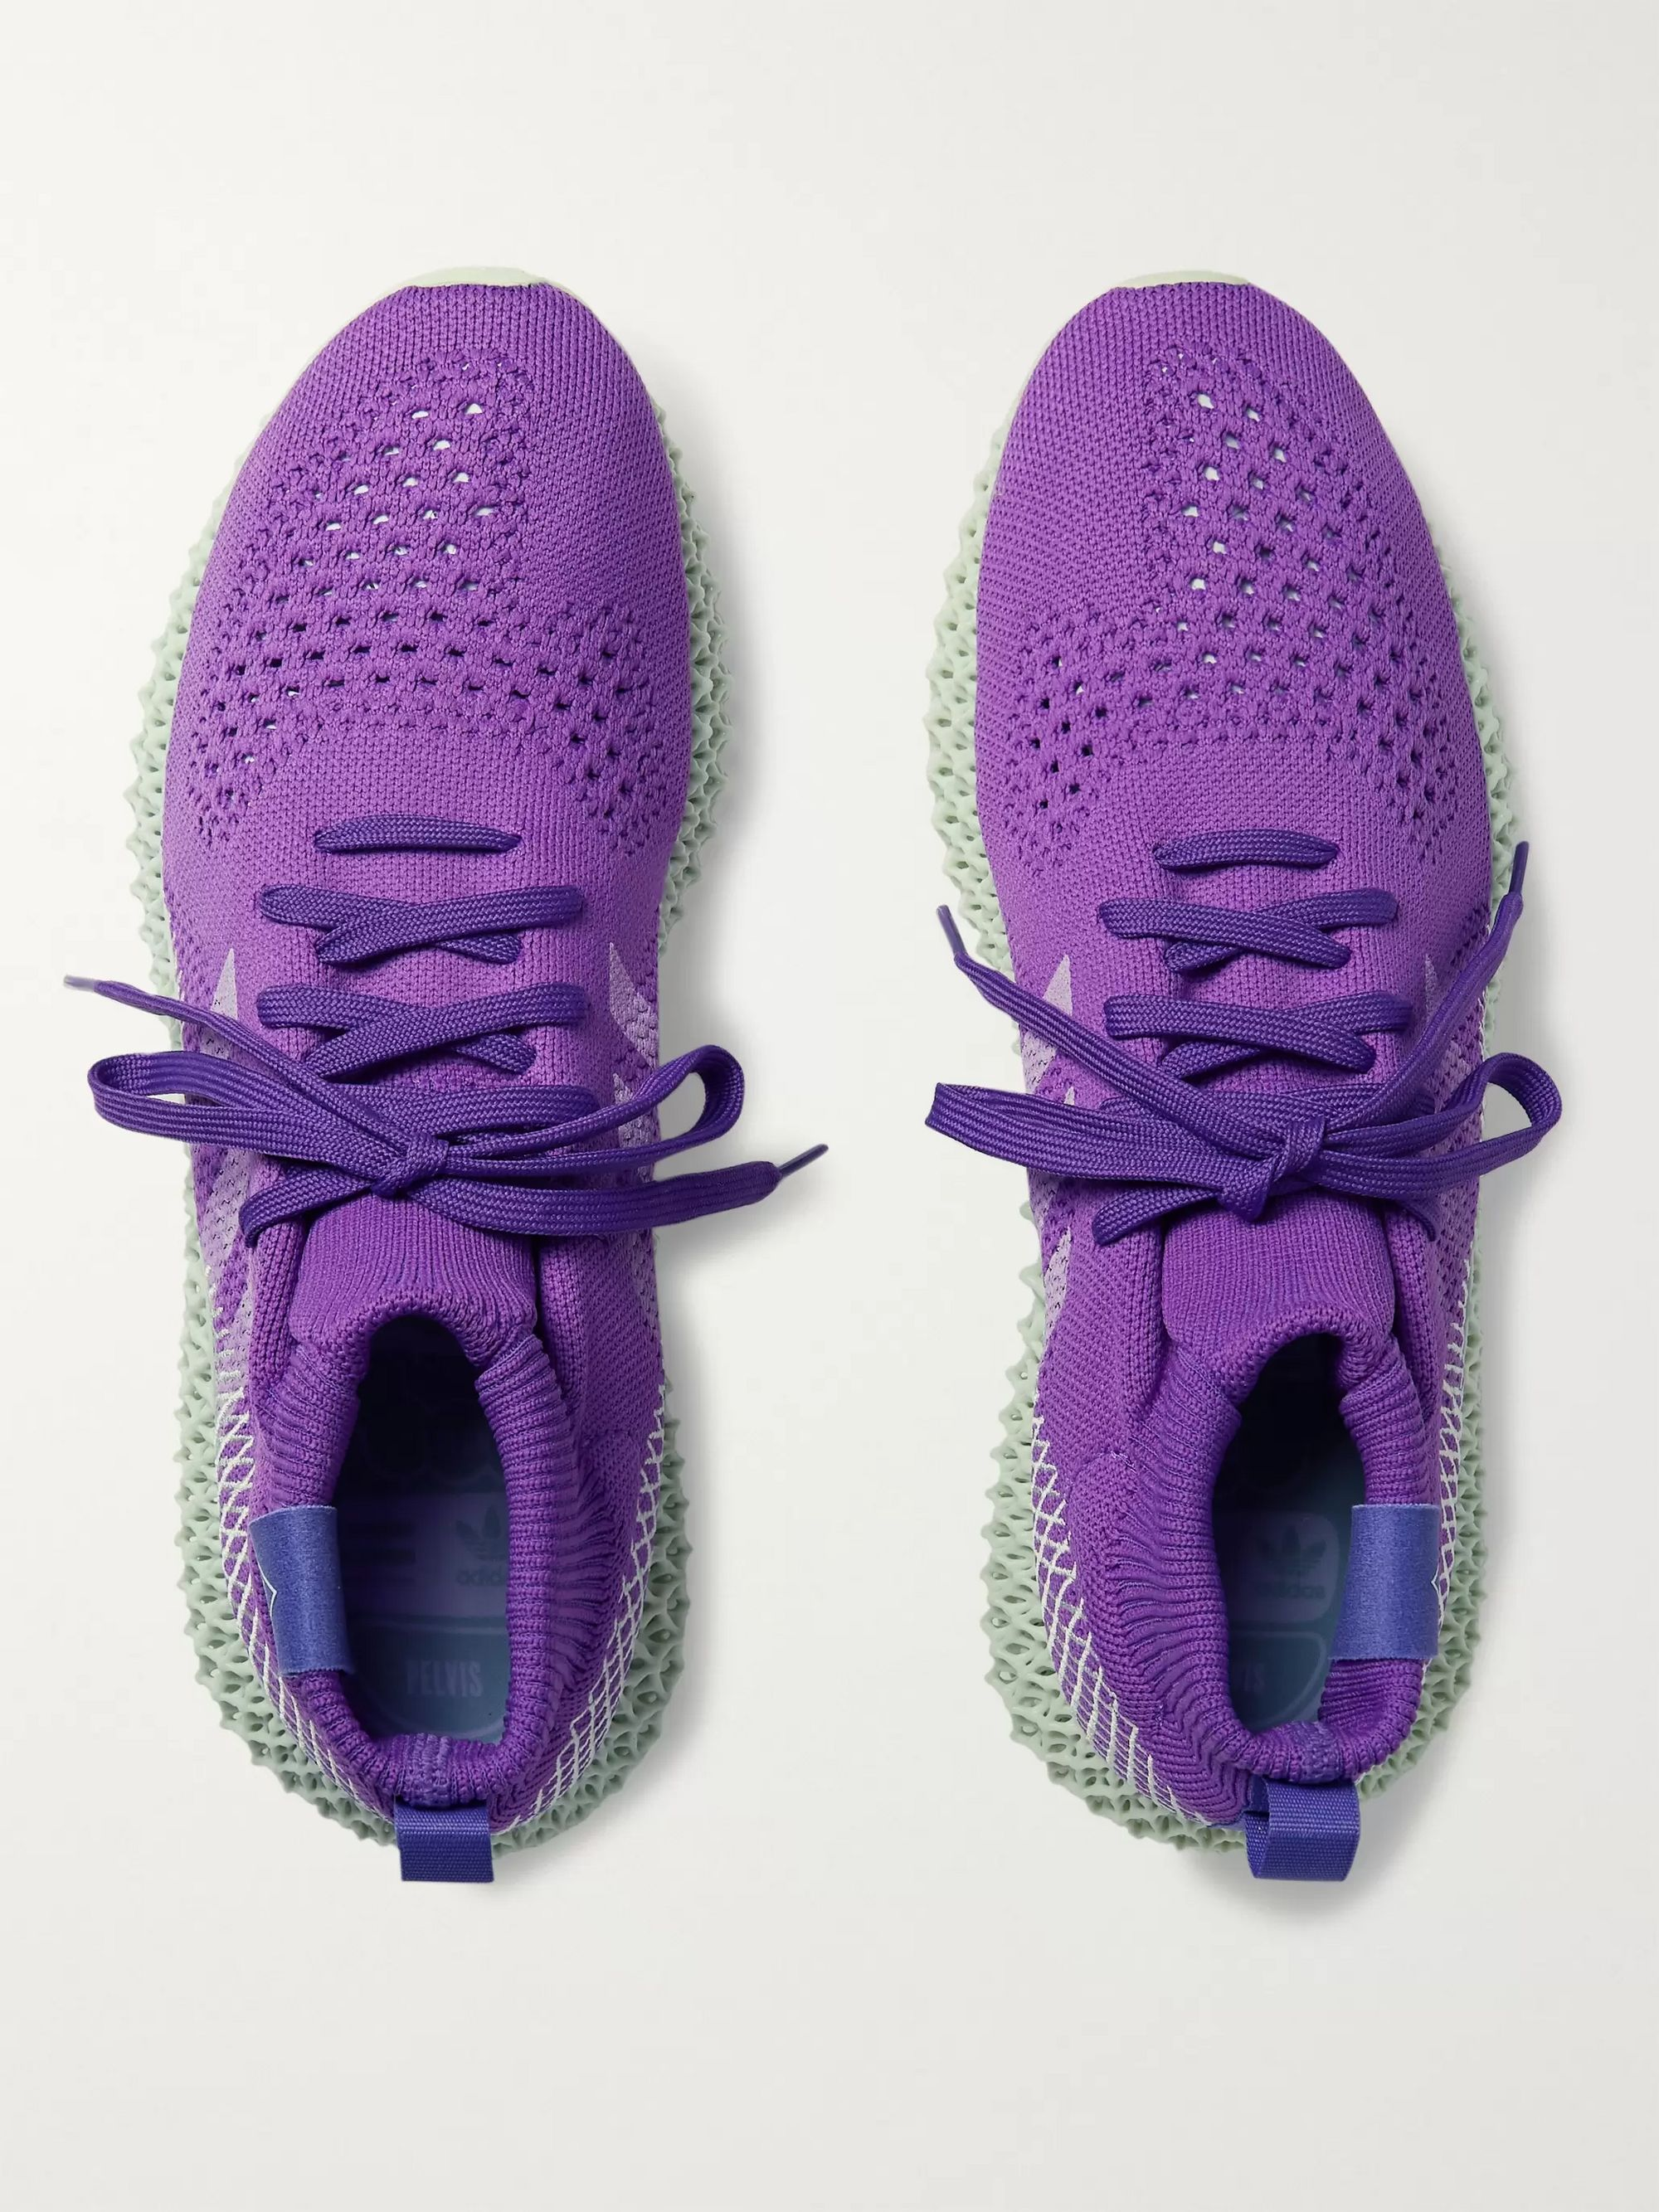 adidas Consortium + Pharrell Williams 4D Runner Embroidered Primeknit Sneakers